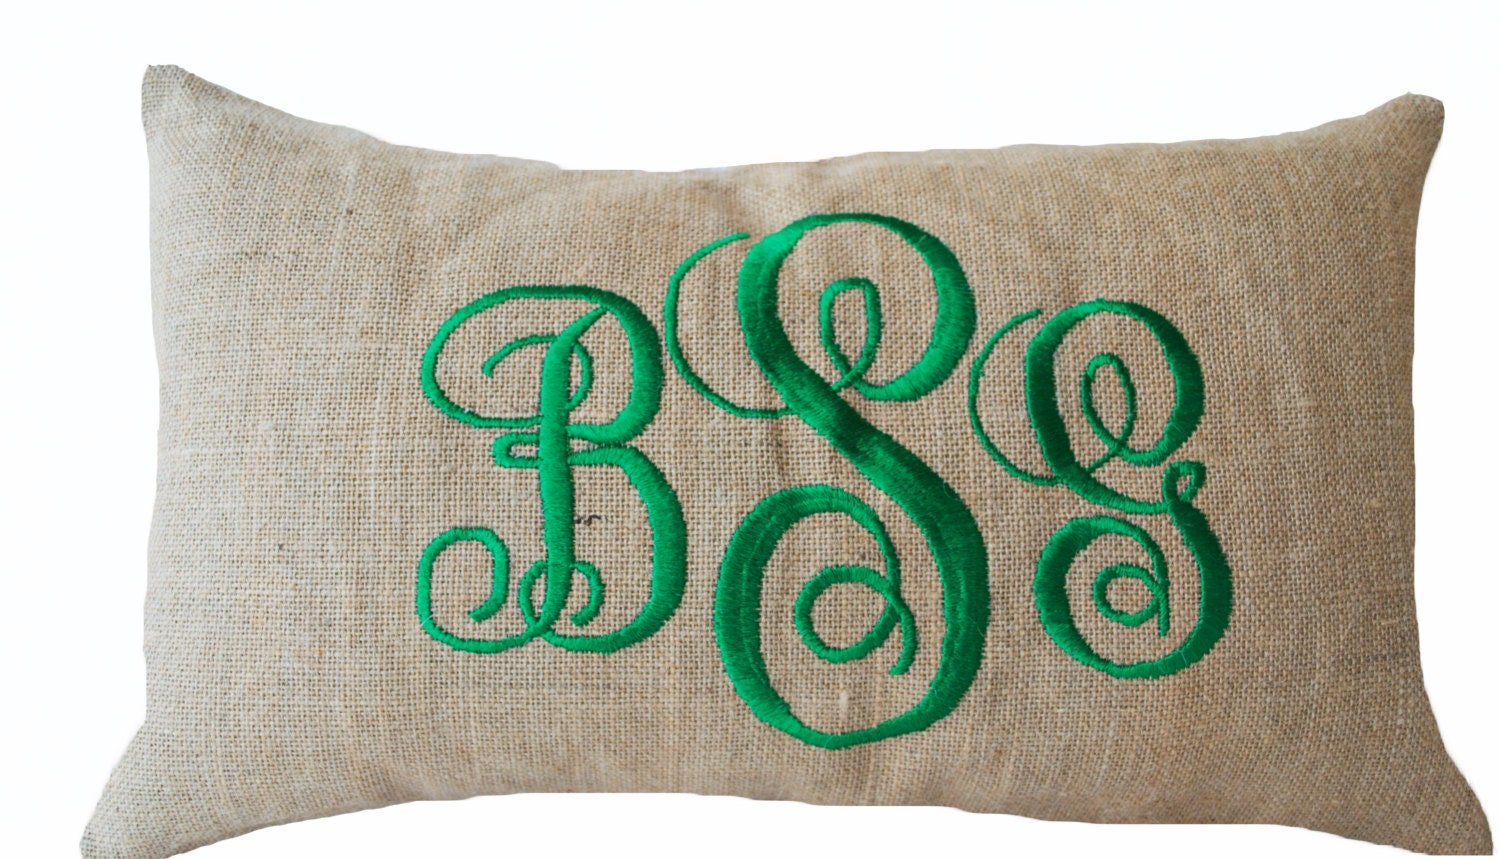 Monogram Throw Pillow Lumbar Pillow Cover Monogrammed